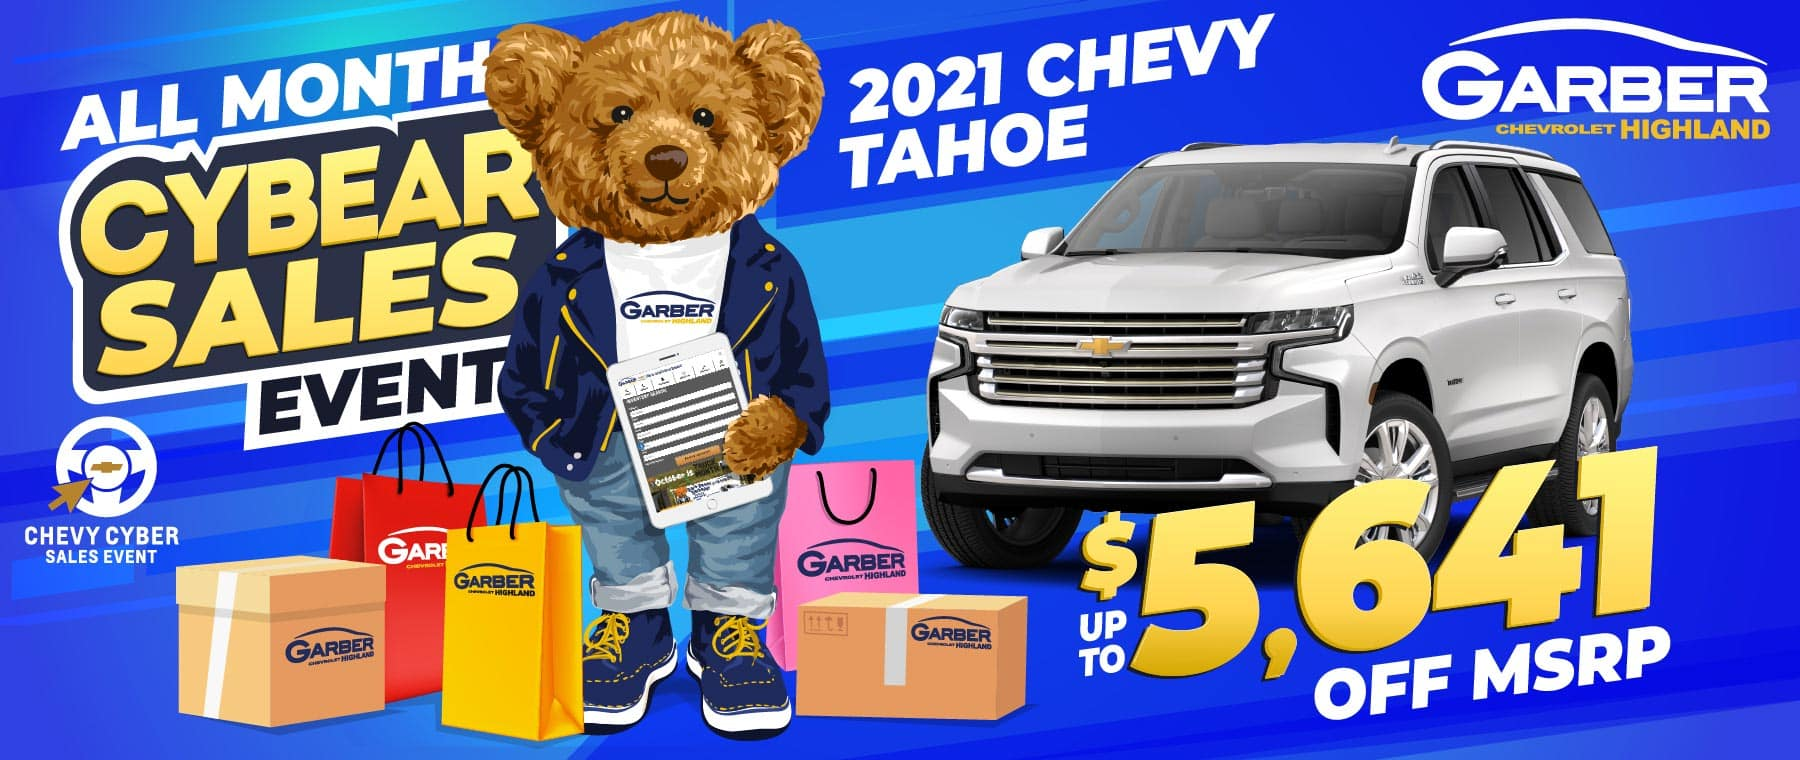 2021 Chevy Tahoe - Save up to $5641 of MSRP